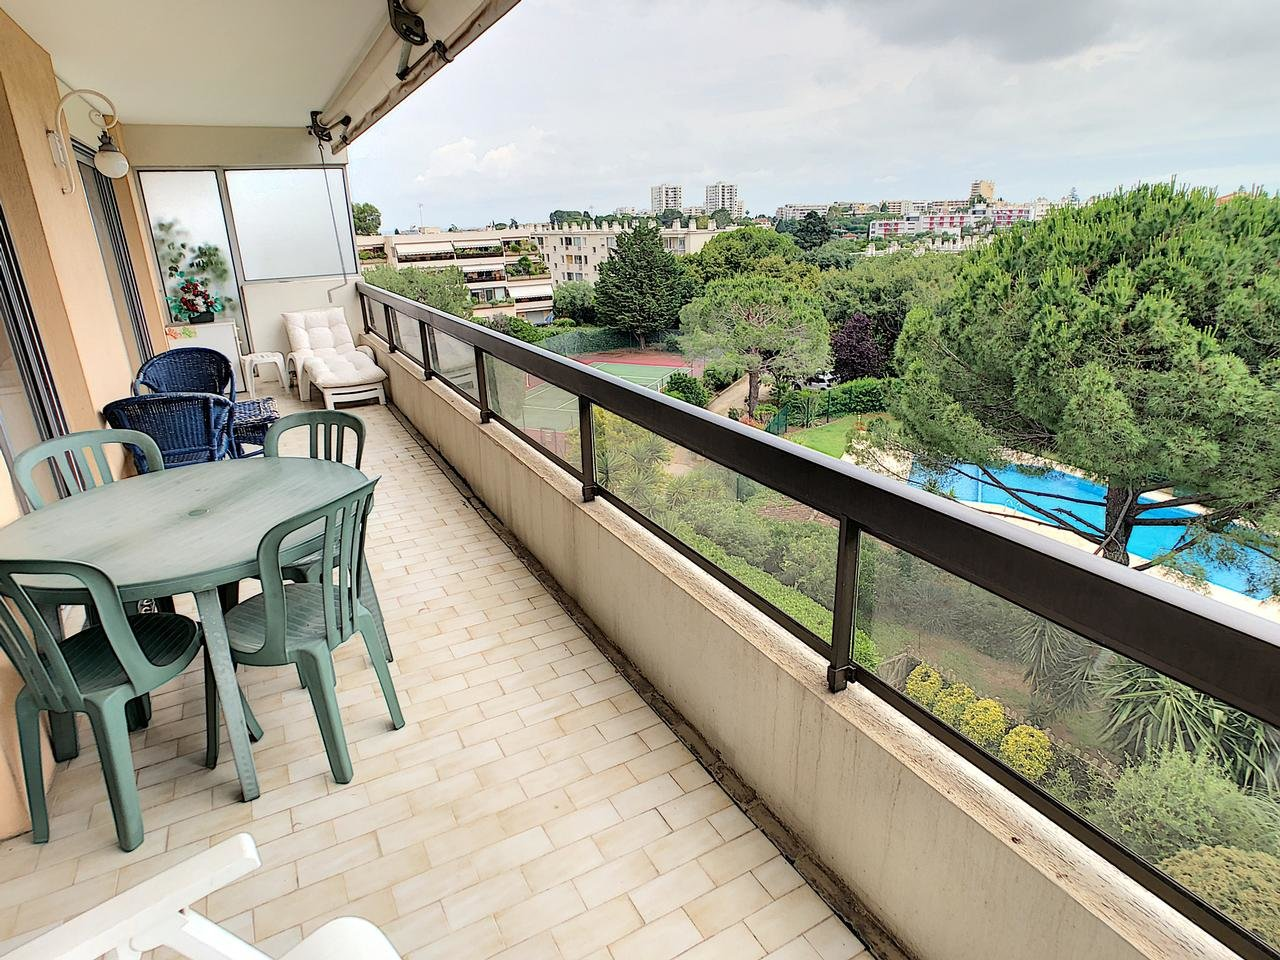 Top floor apartment with large terrace and pool